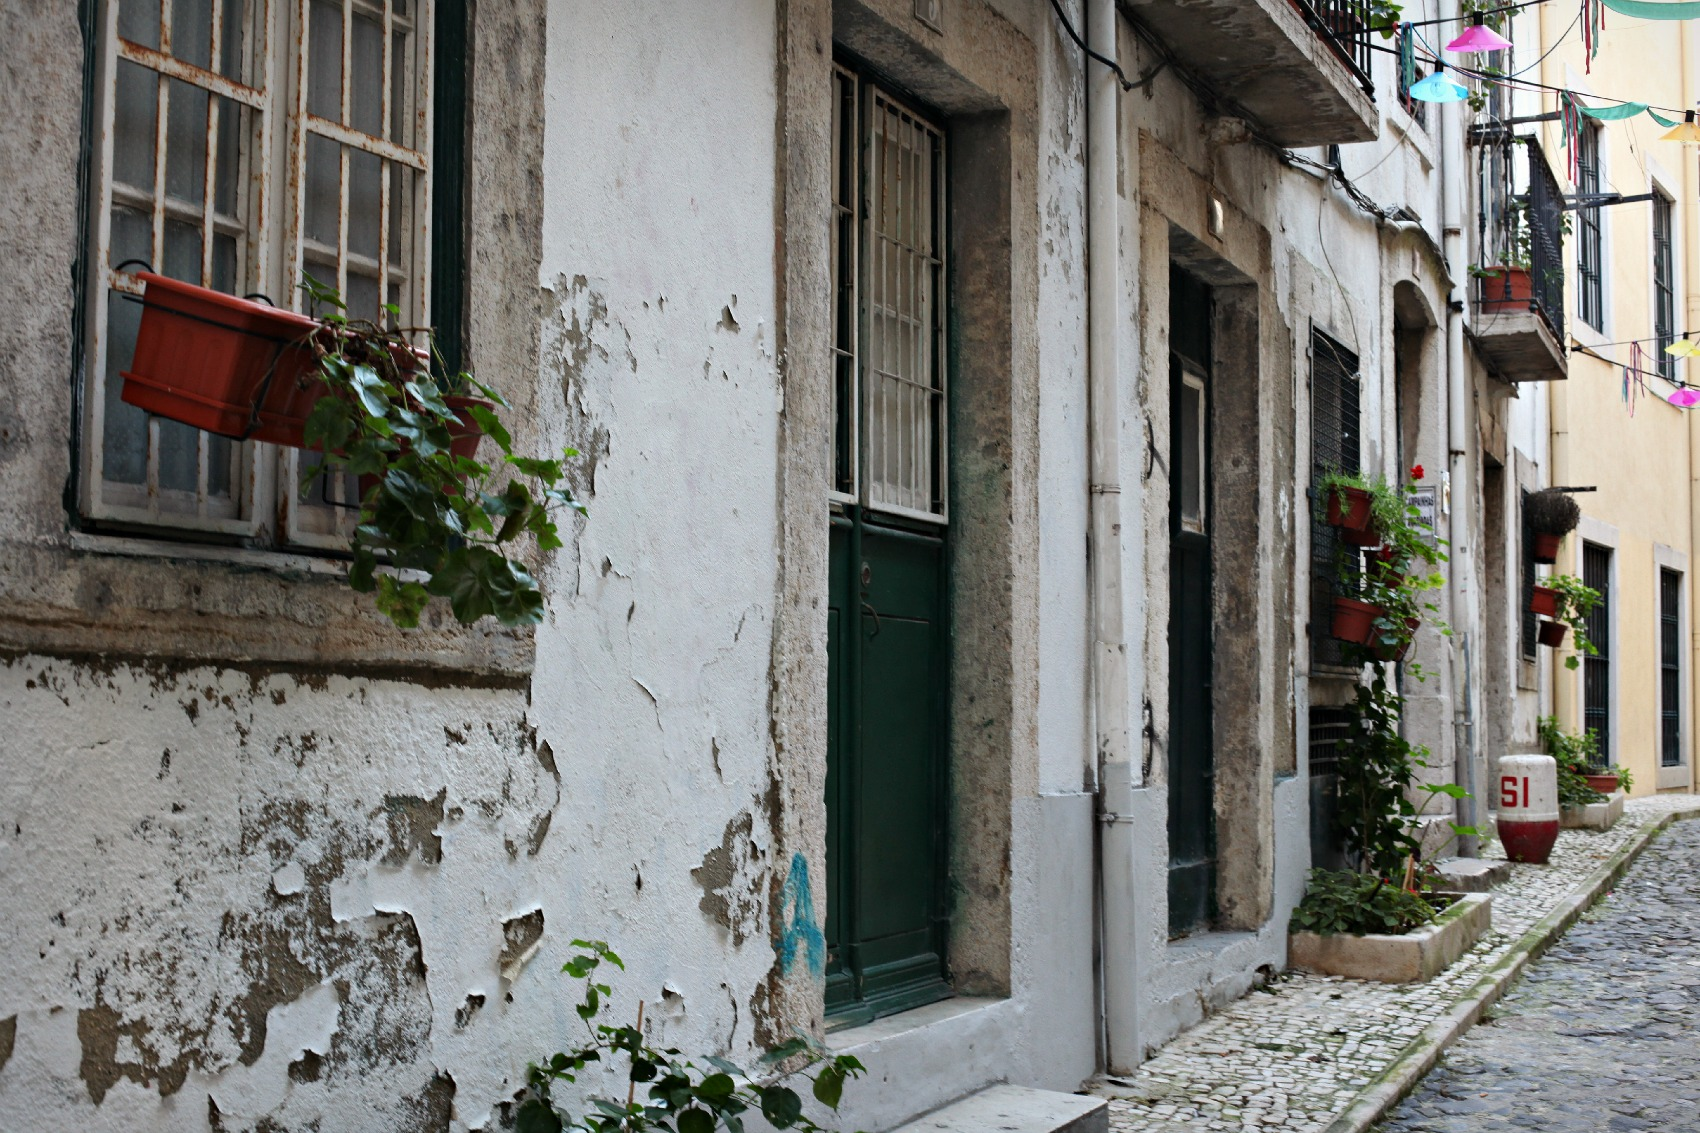 Streets of Mouraria